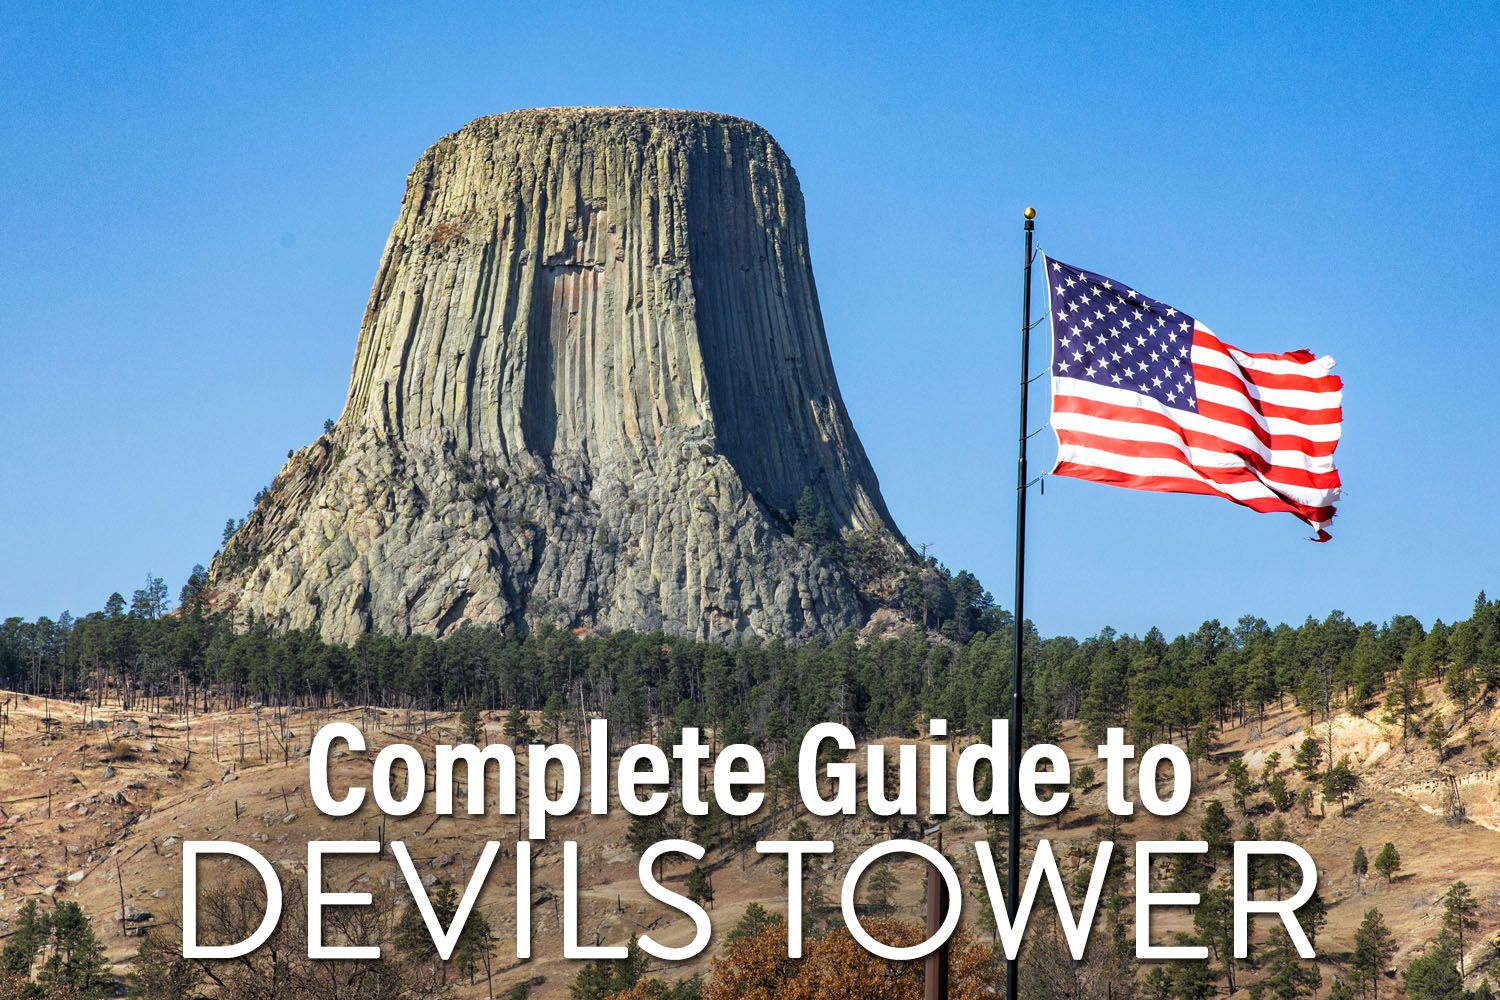 Guide to Devils Tower